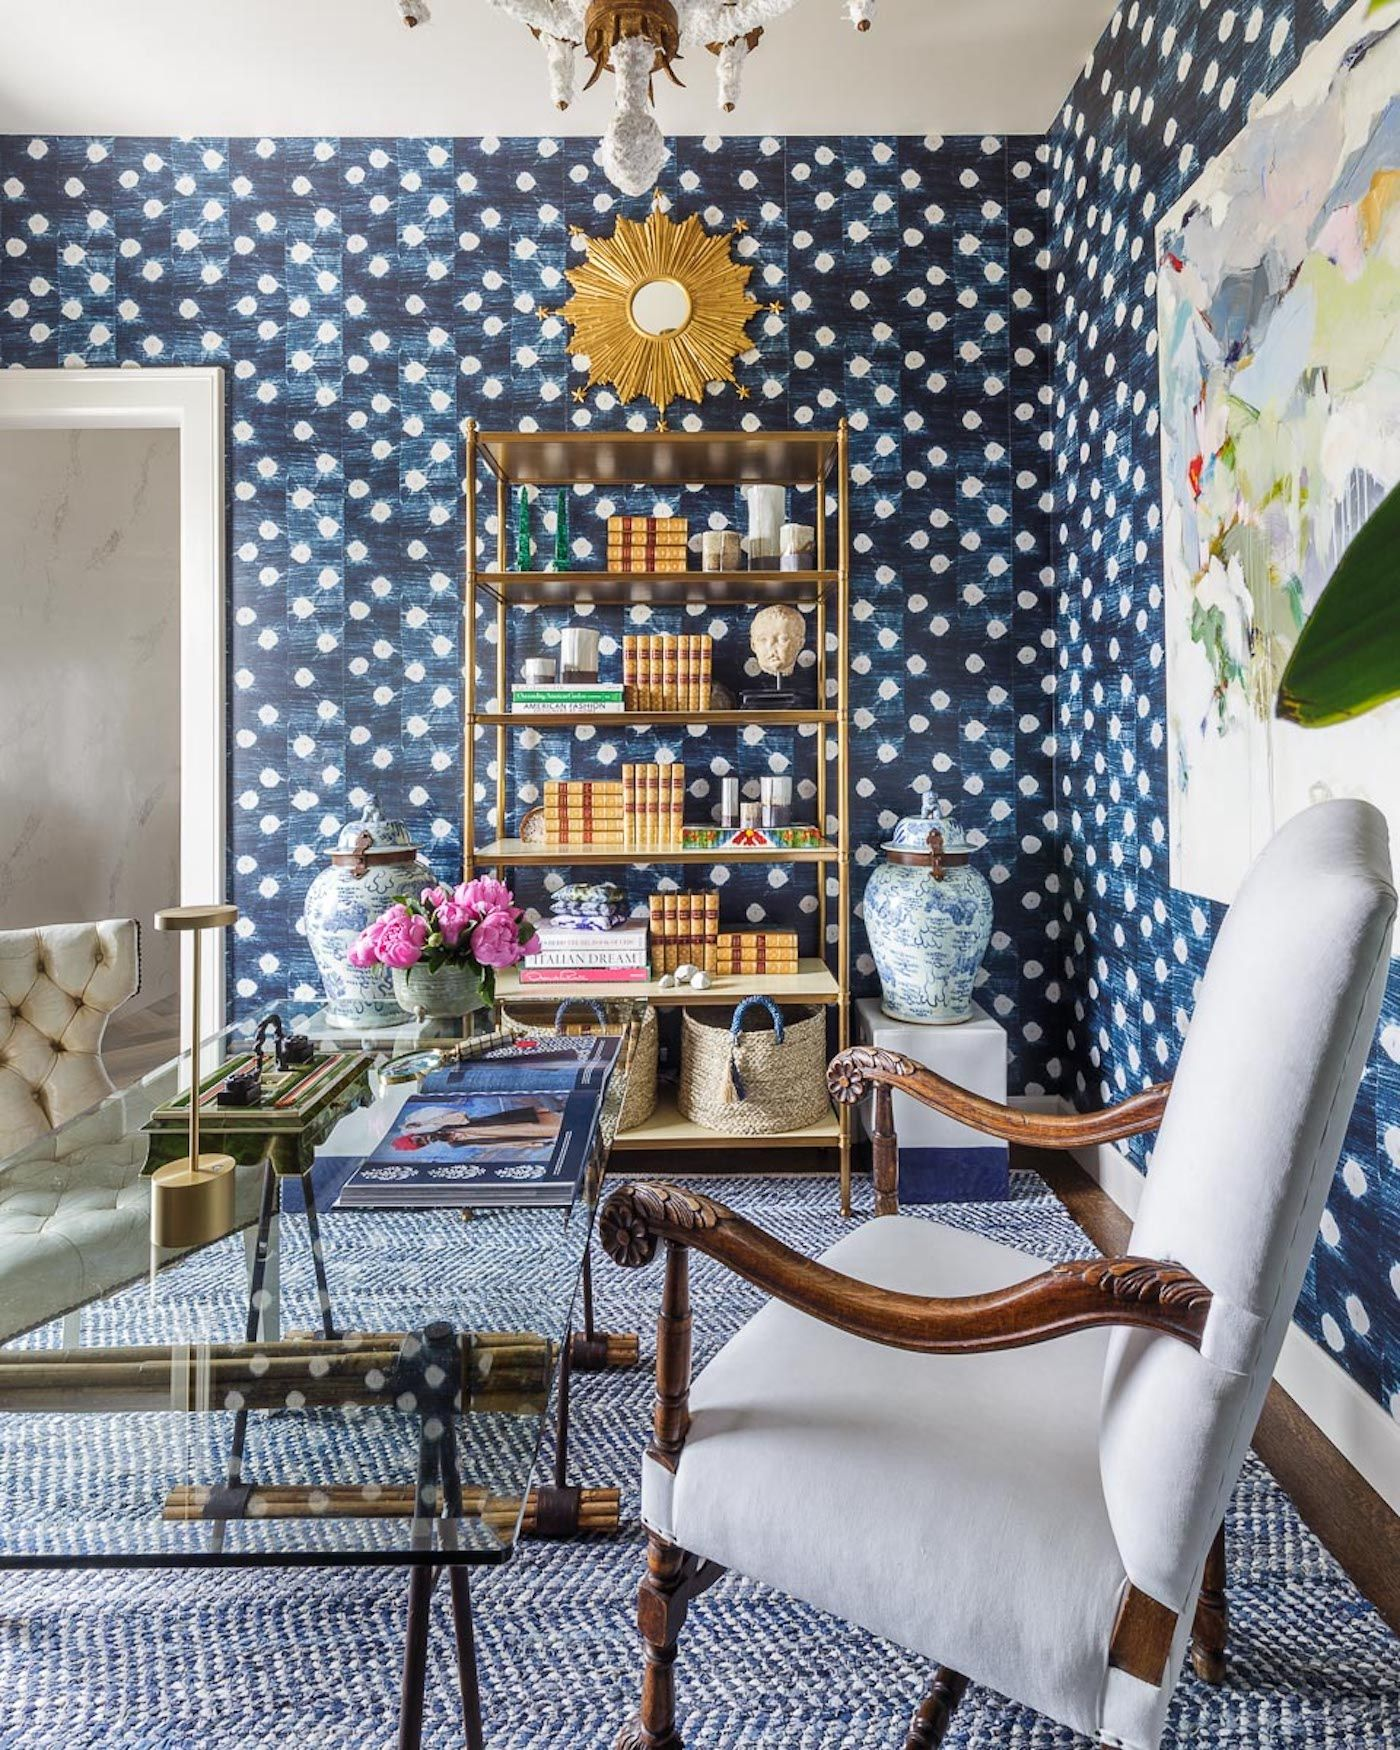 Maximalist interior design ideas best home decor ideas for maximalists